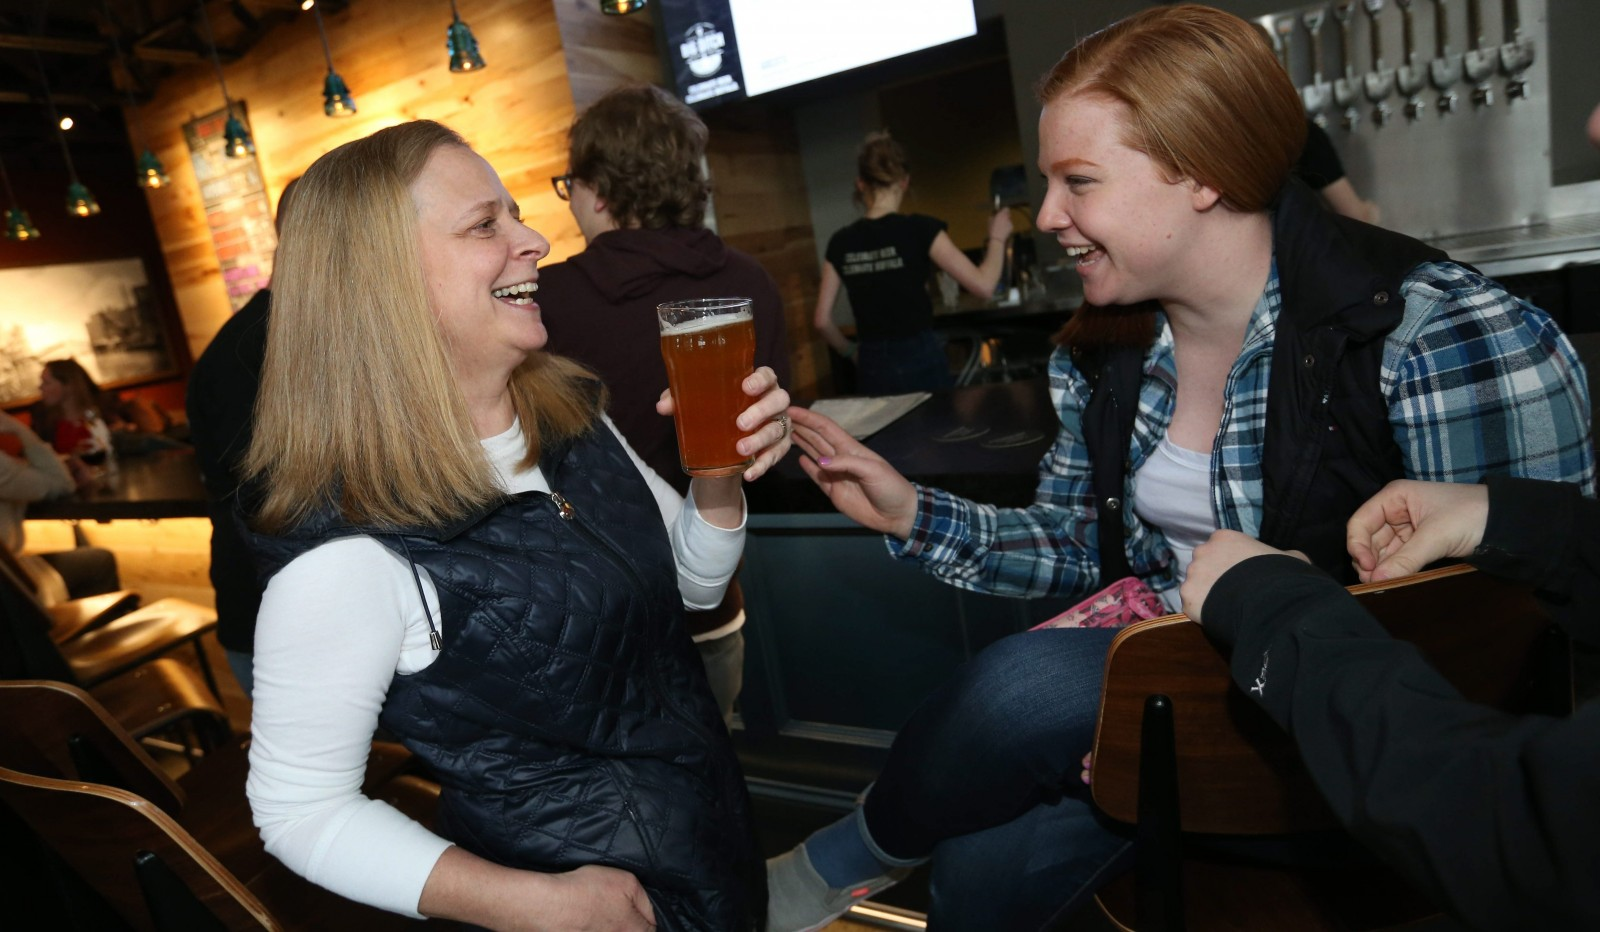 Colleen Bohn of Ellicottville has a Low Bridge while hanging out with her daughters, Mary, center and Kelsey at Big Ditch Brewing Company. (Sharon Cantillon/Buffalo News file photo)